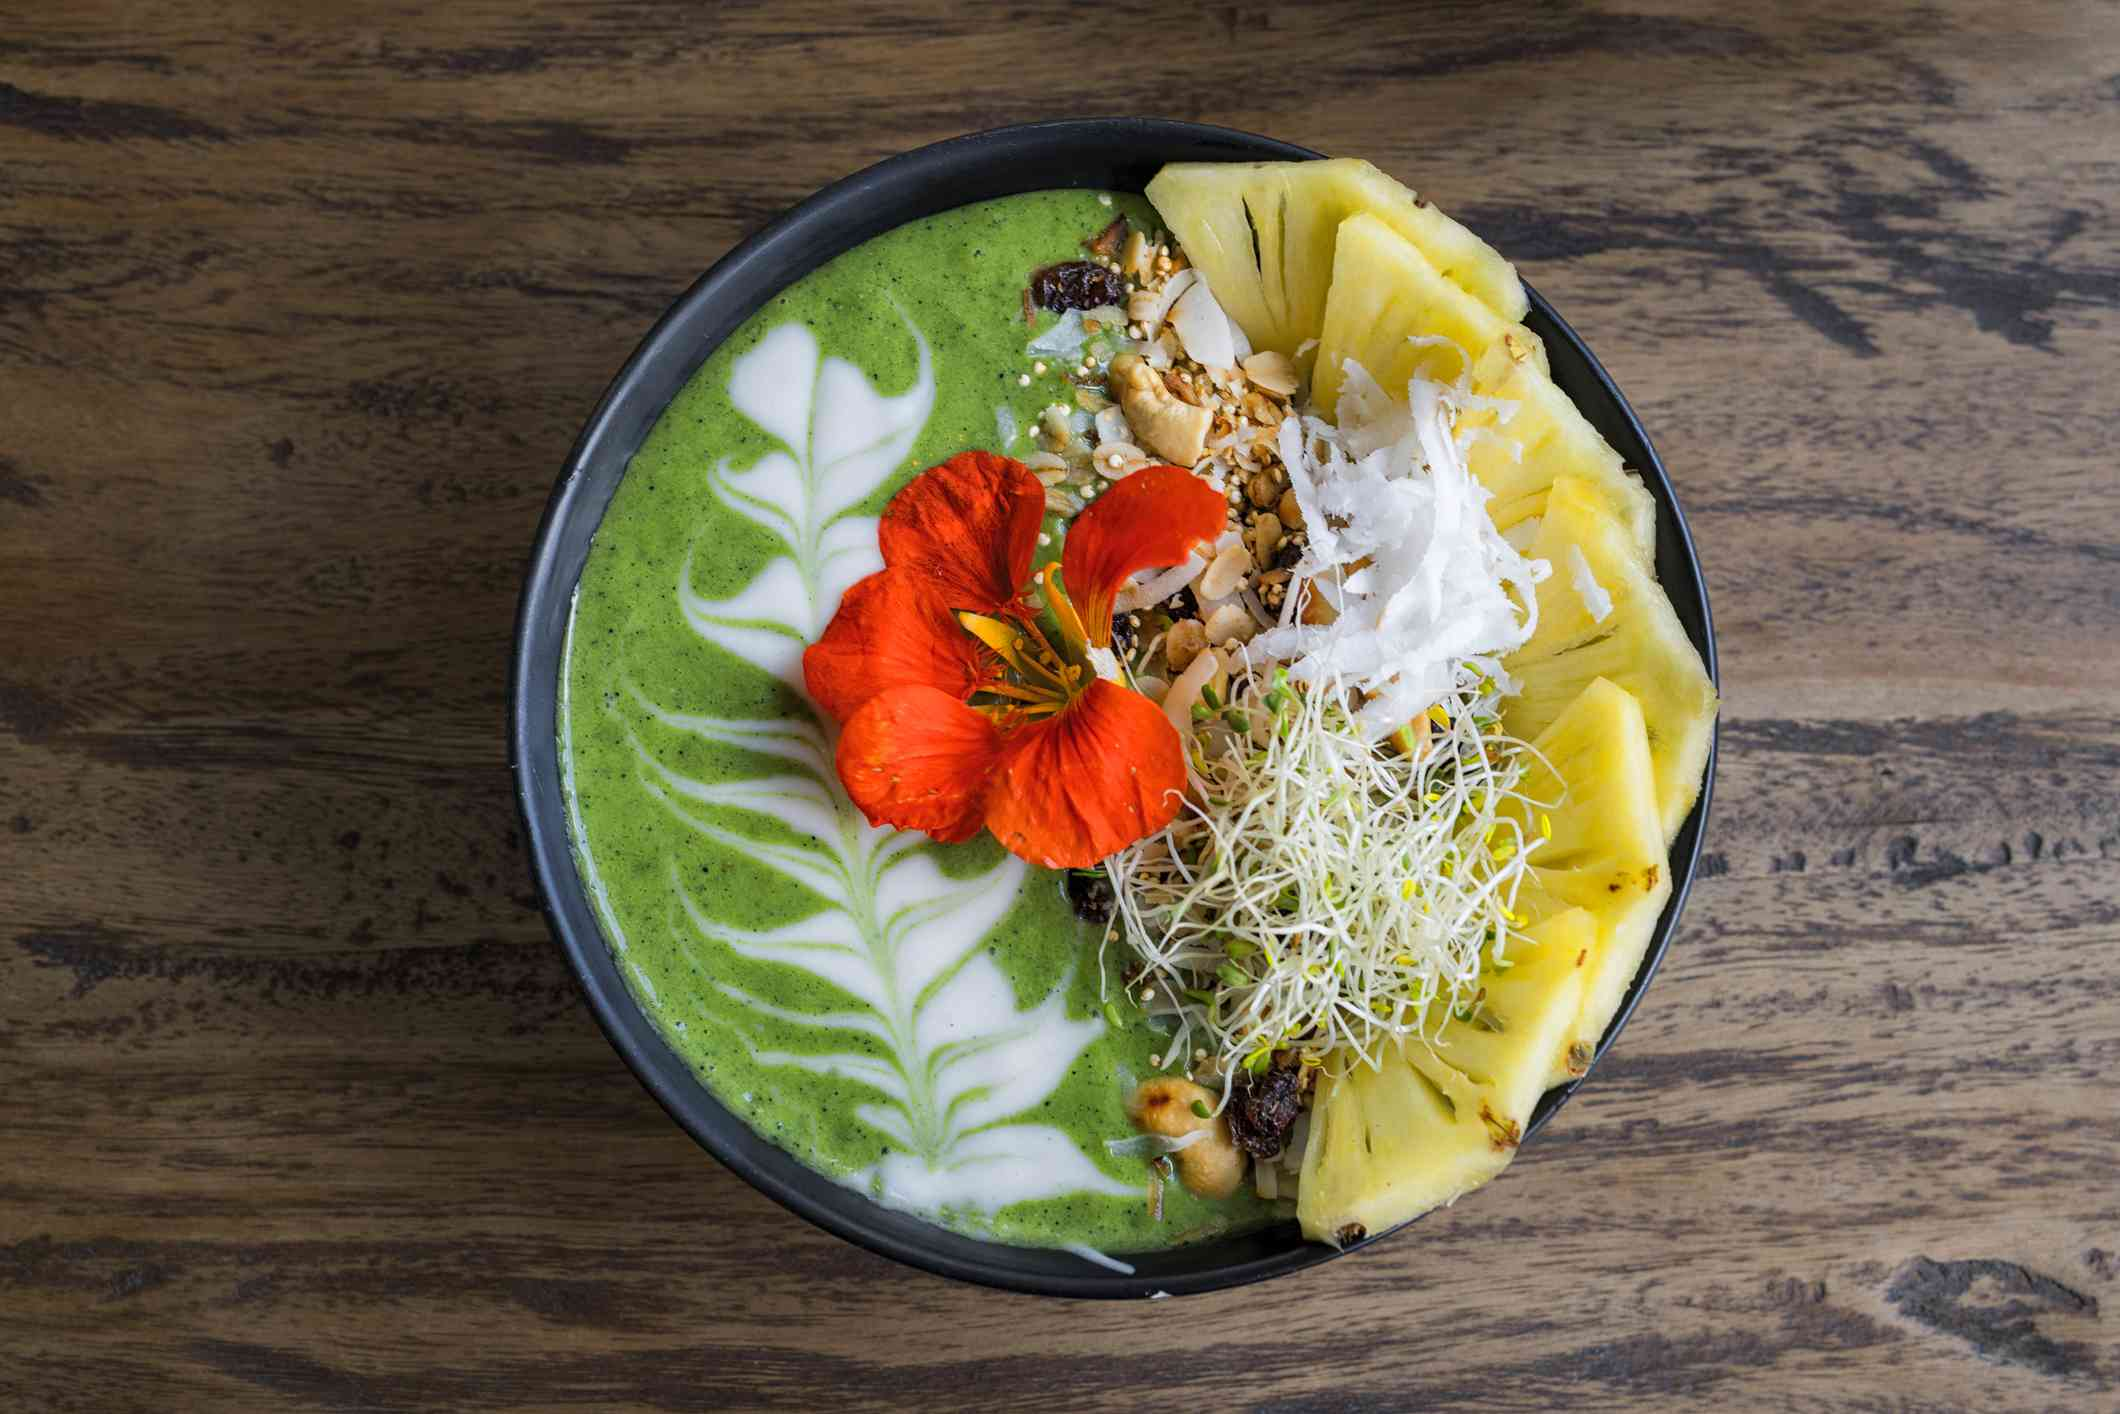 Decorated green smoothie bowl with pineapple and edible flower